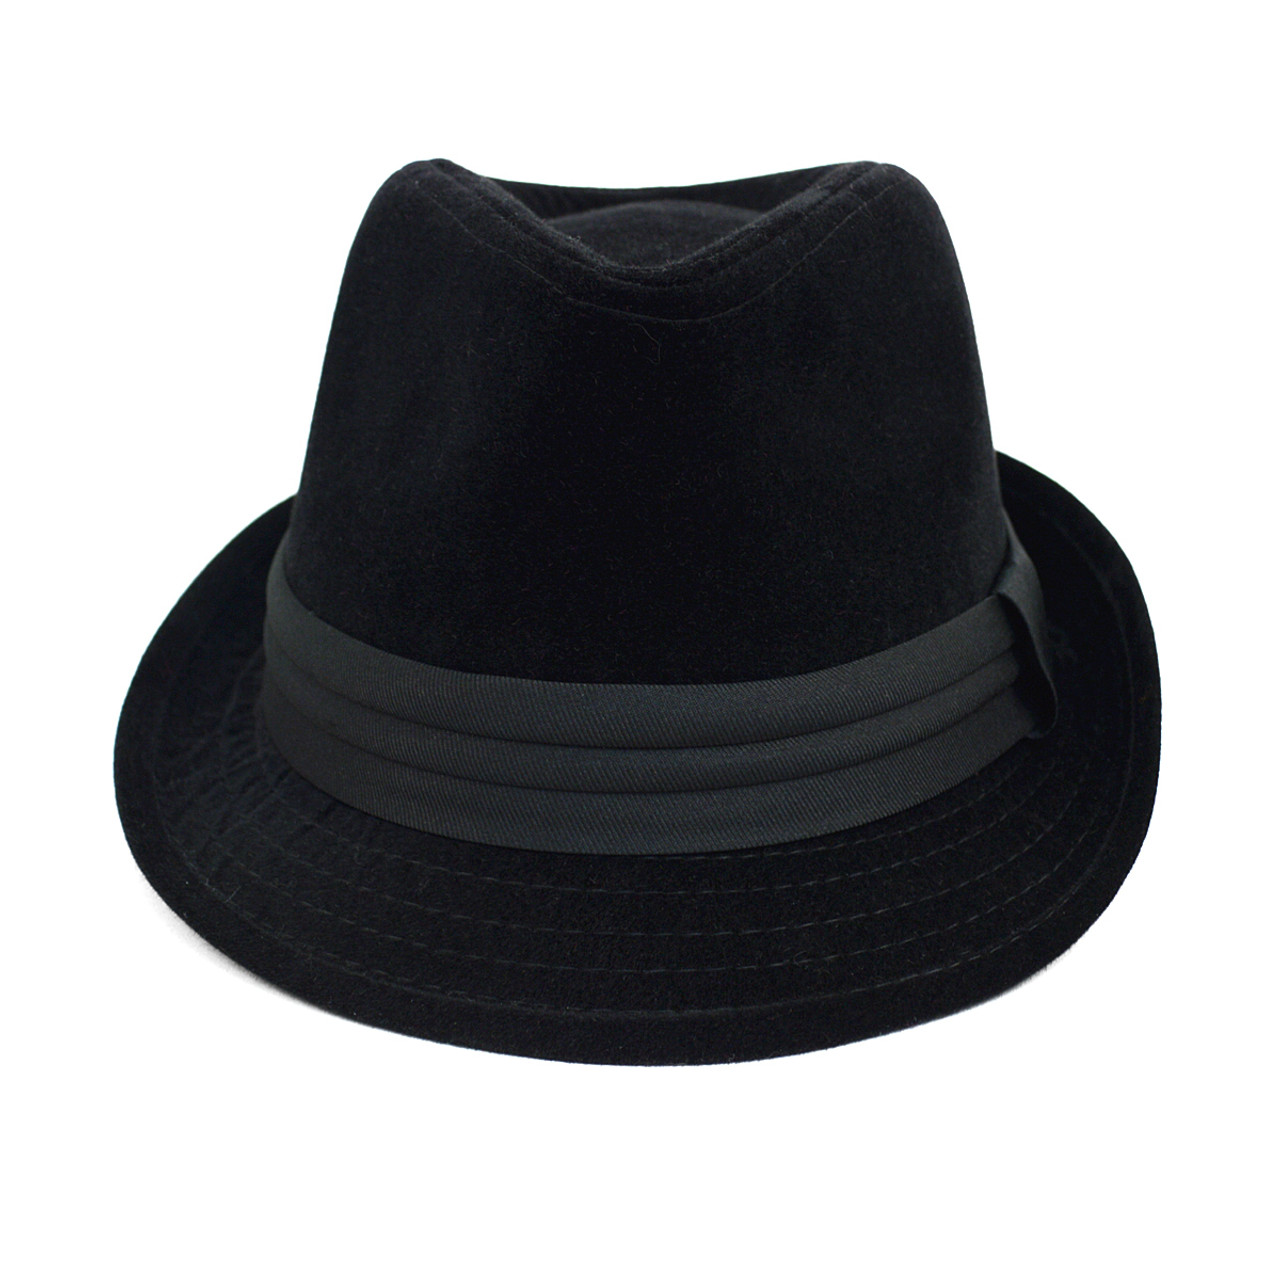 ... Fall Winter Velvet Trilby Fedora Hat with Band Trim H171226-BLK ... 84813872216